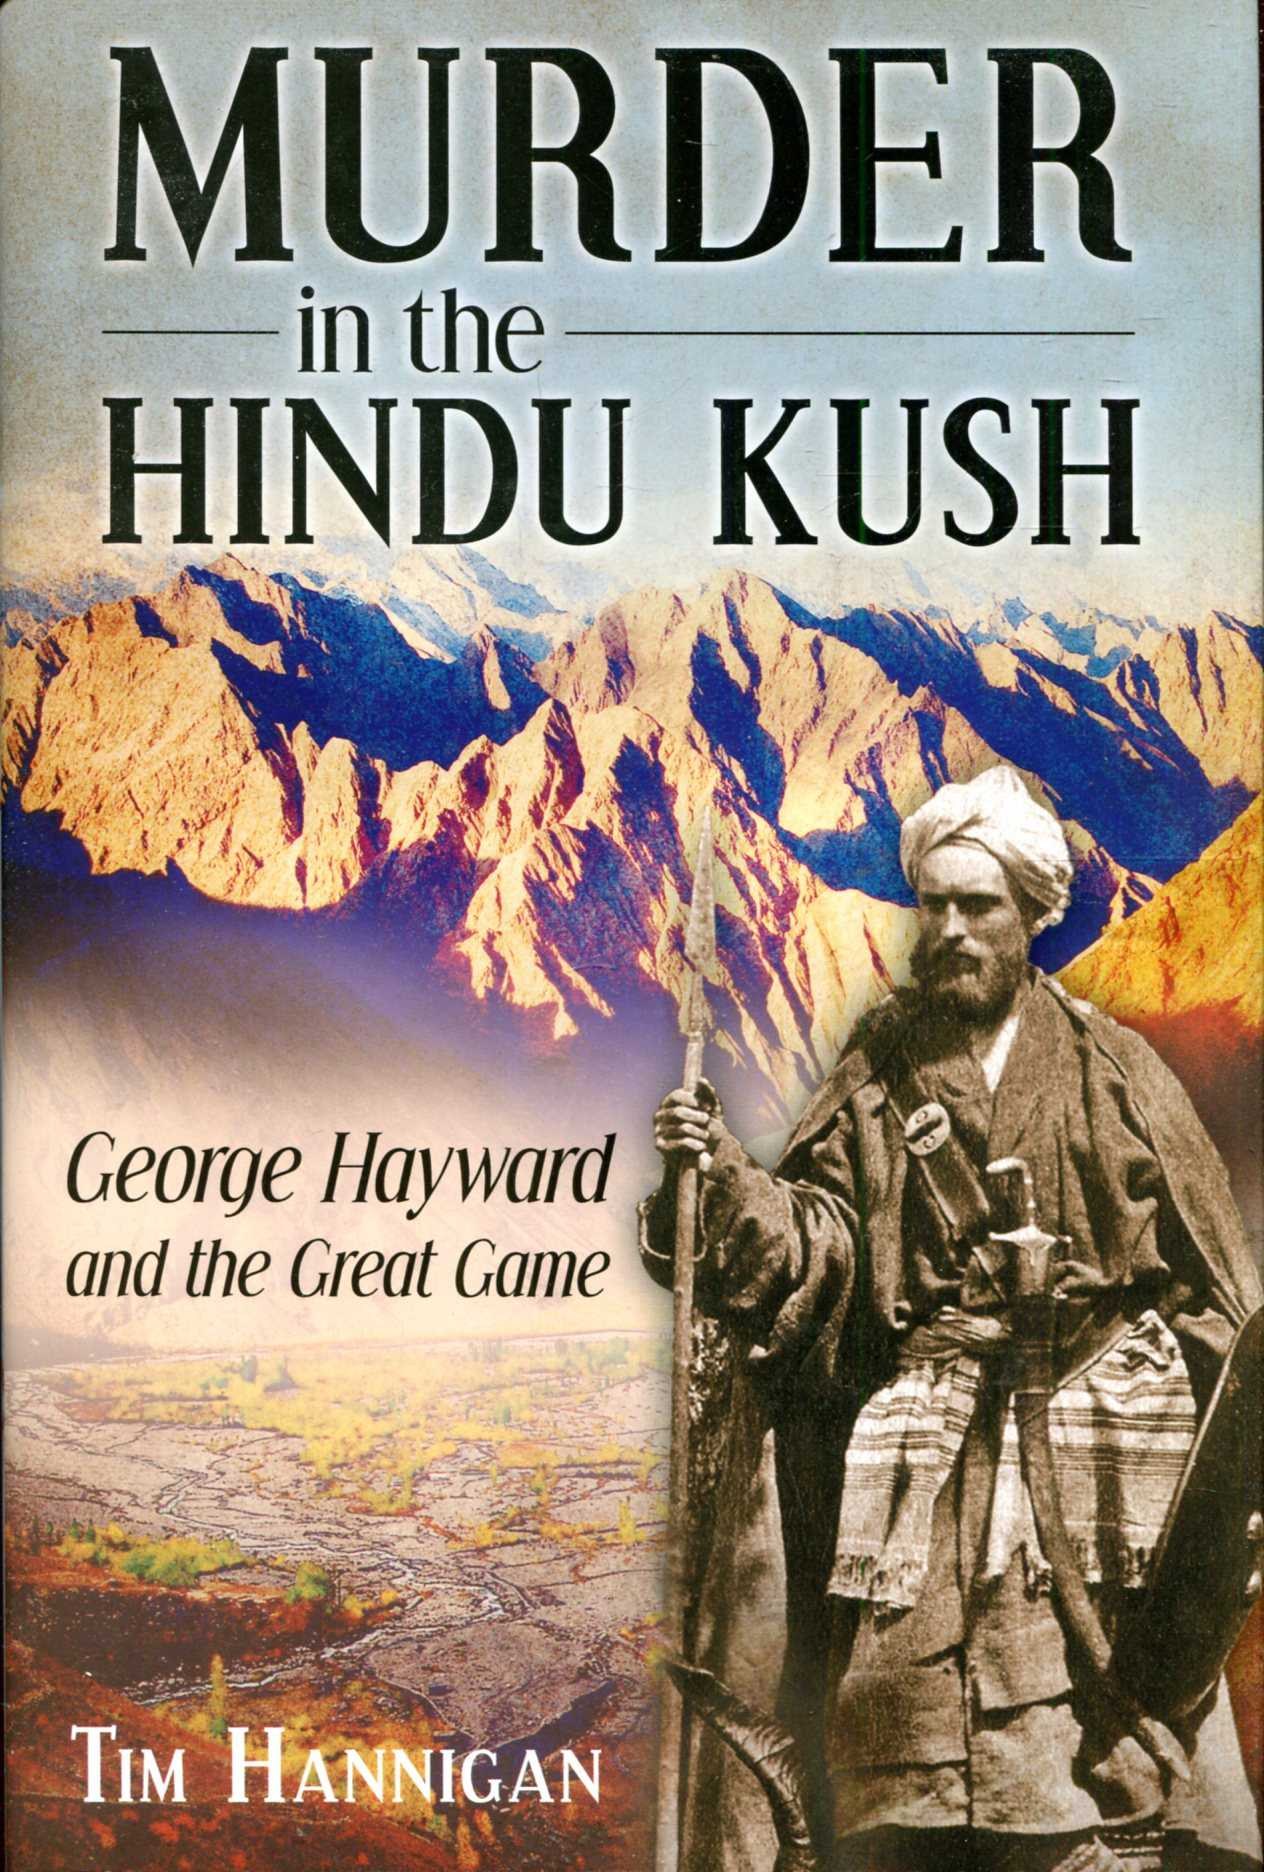 Image for Murder in the Hindu Kush: George Hayward and the Great Game